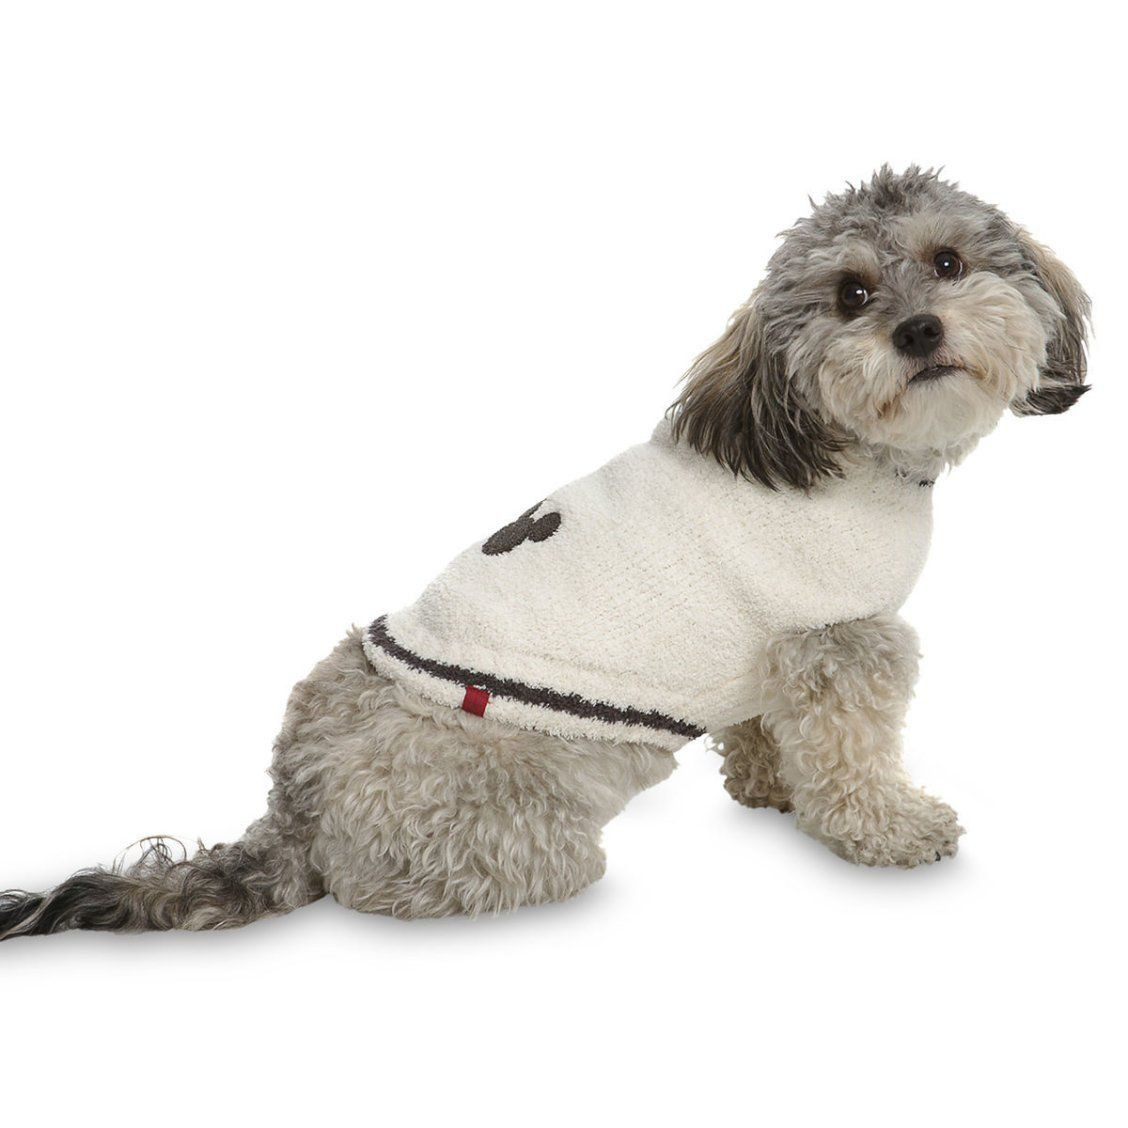 Mickey Mouse Pet Sweater By Barefoot Dreams Stocking Stuffers